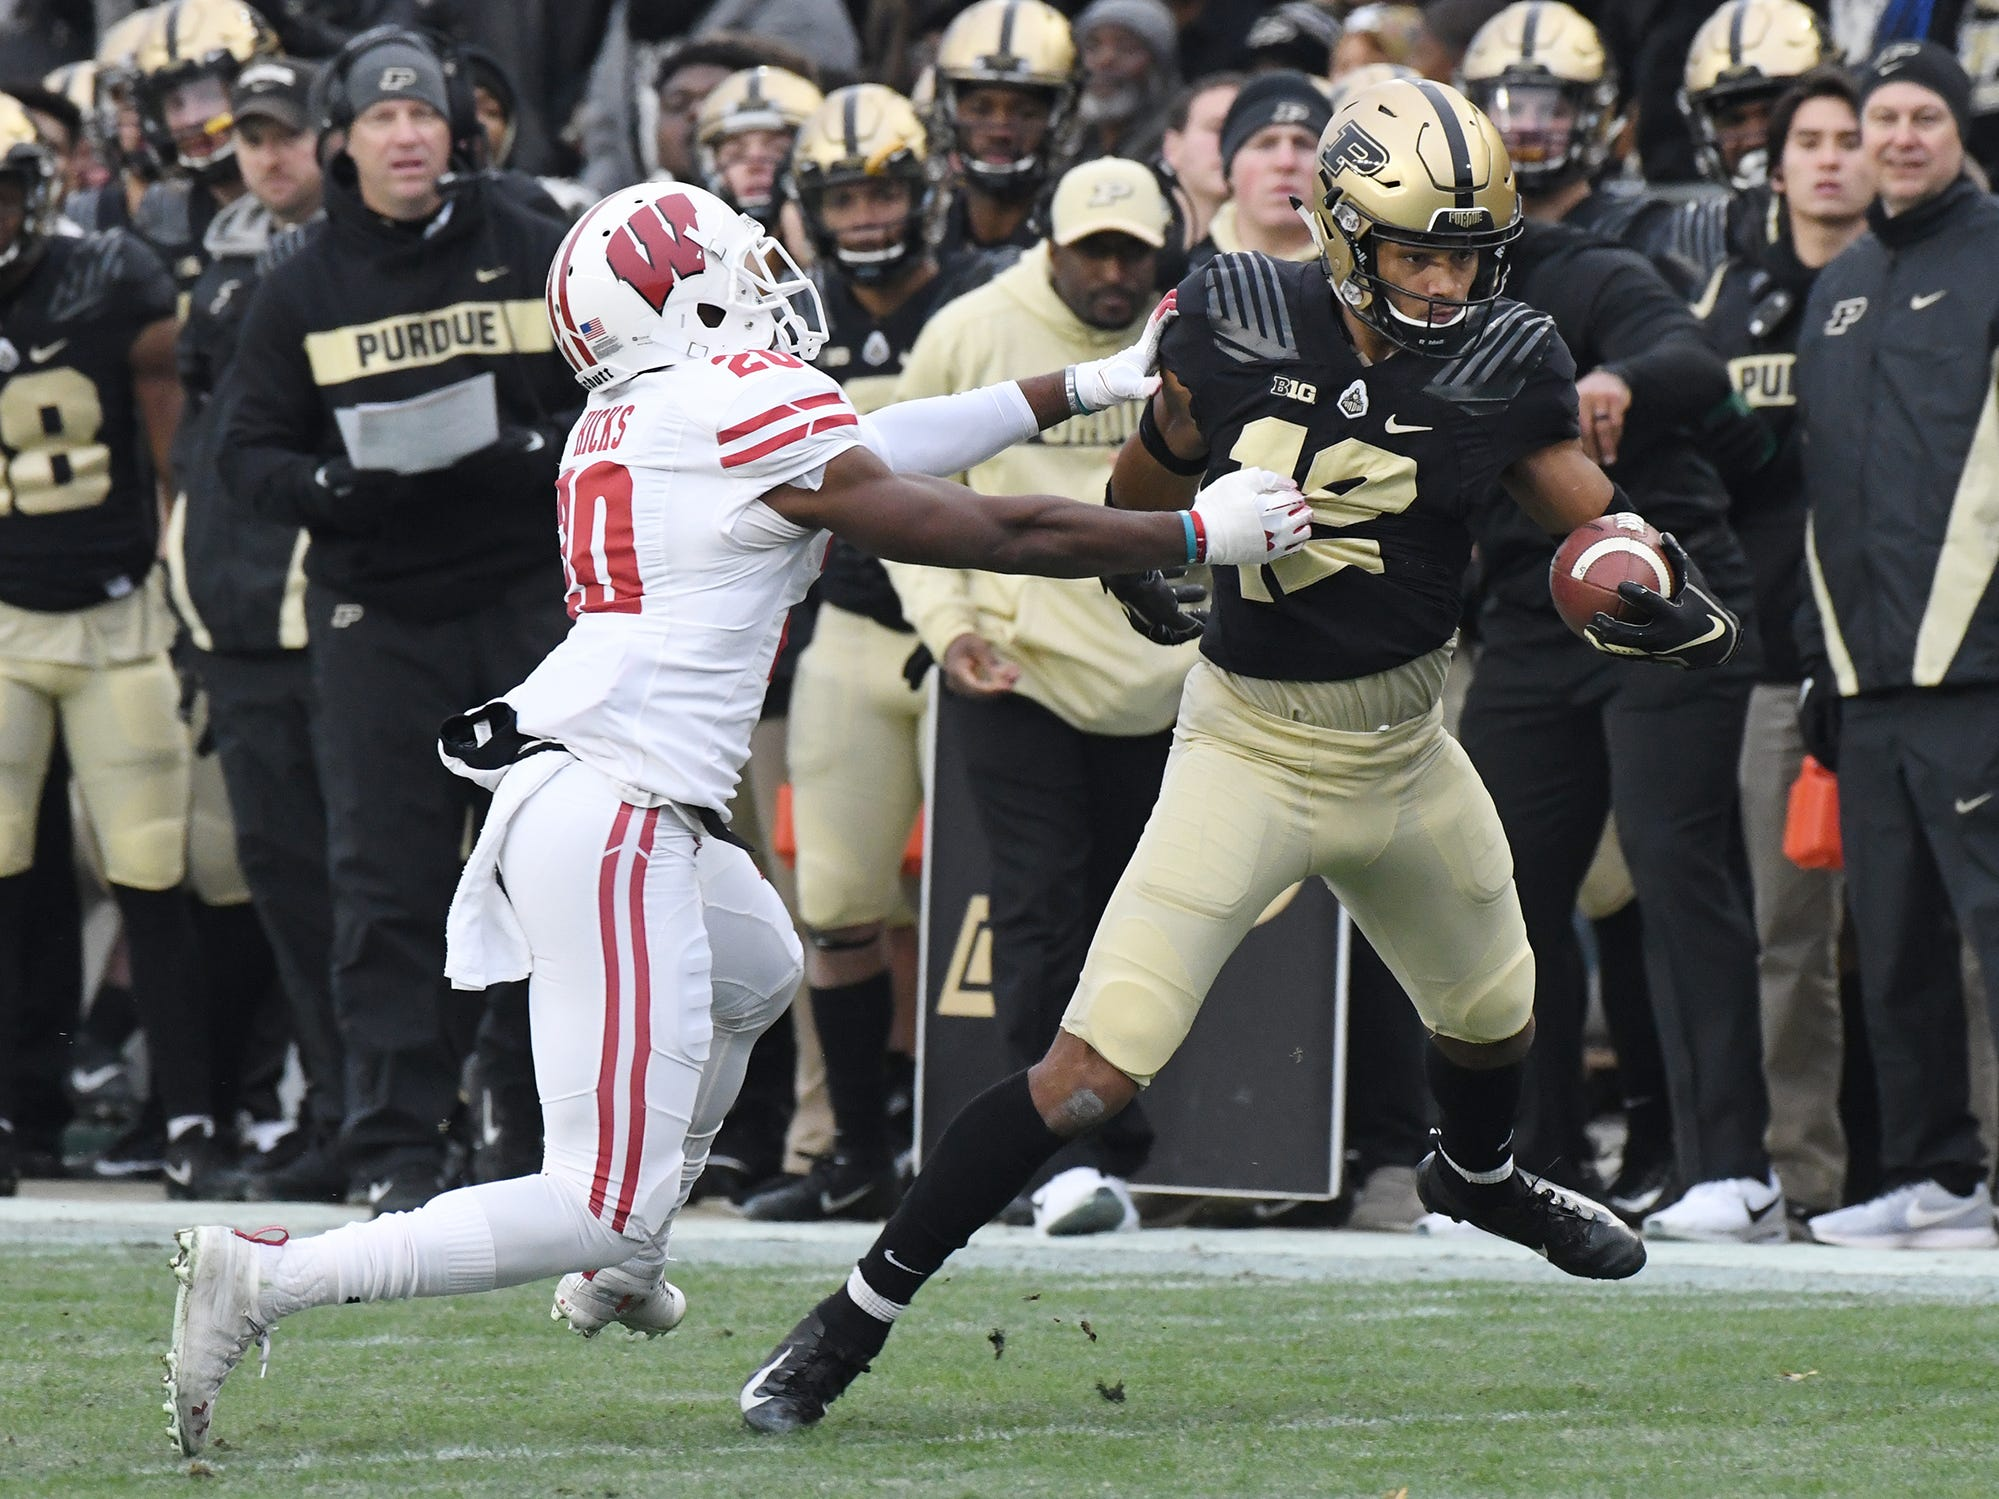 Jared Sparks of Purdue tries to shake free of Faion Hicks of Wisconsin after a fist half pass reception Saturday, November 17, 2018, at Ross-Ade Stadium.